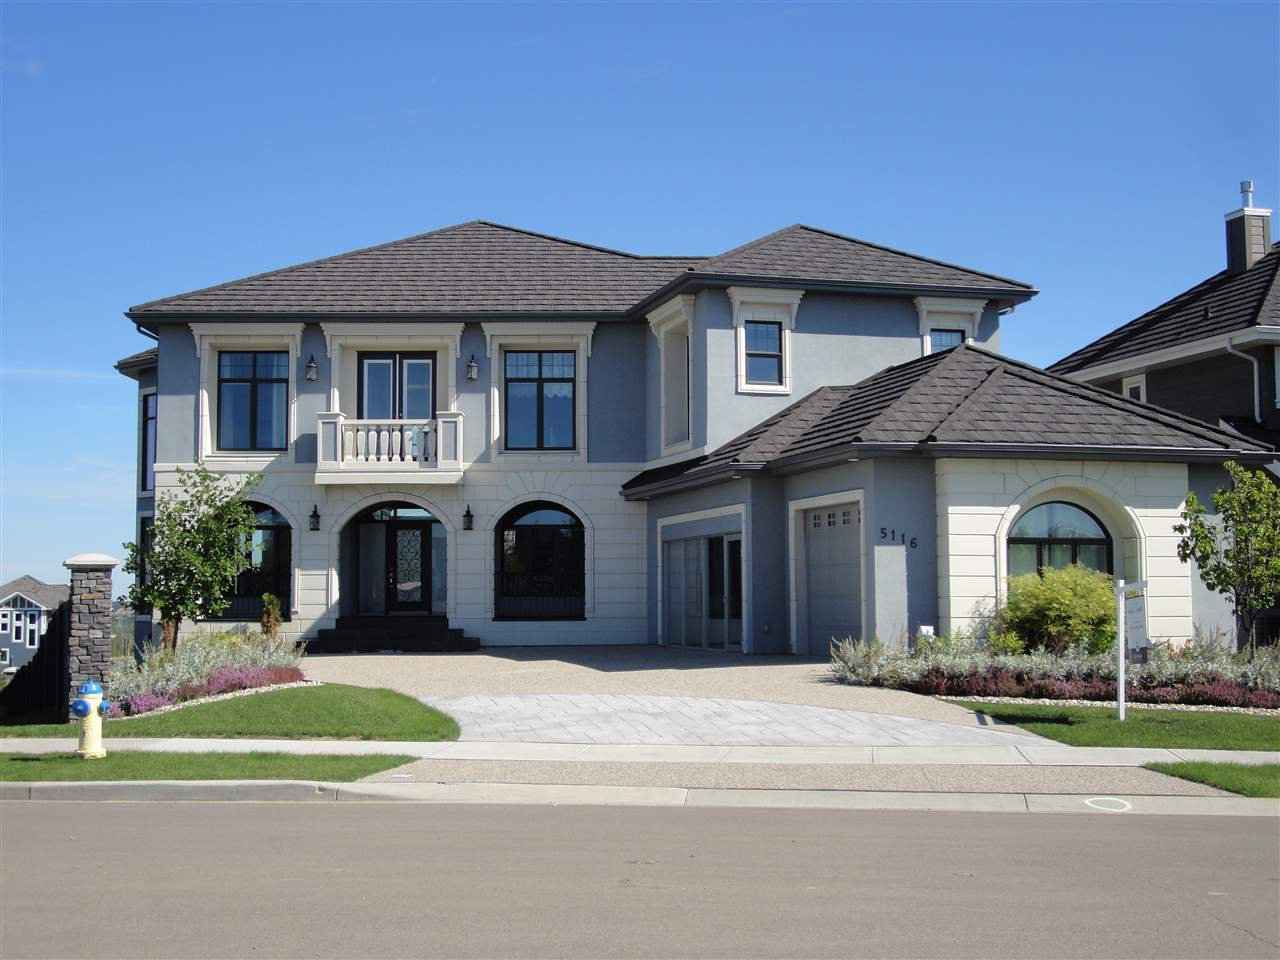 Main Photo: 5116 WOOLSEY Link in Edmonton: Zone 56 House for sale : MLS®# E4197713